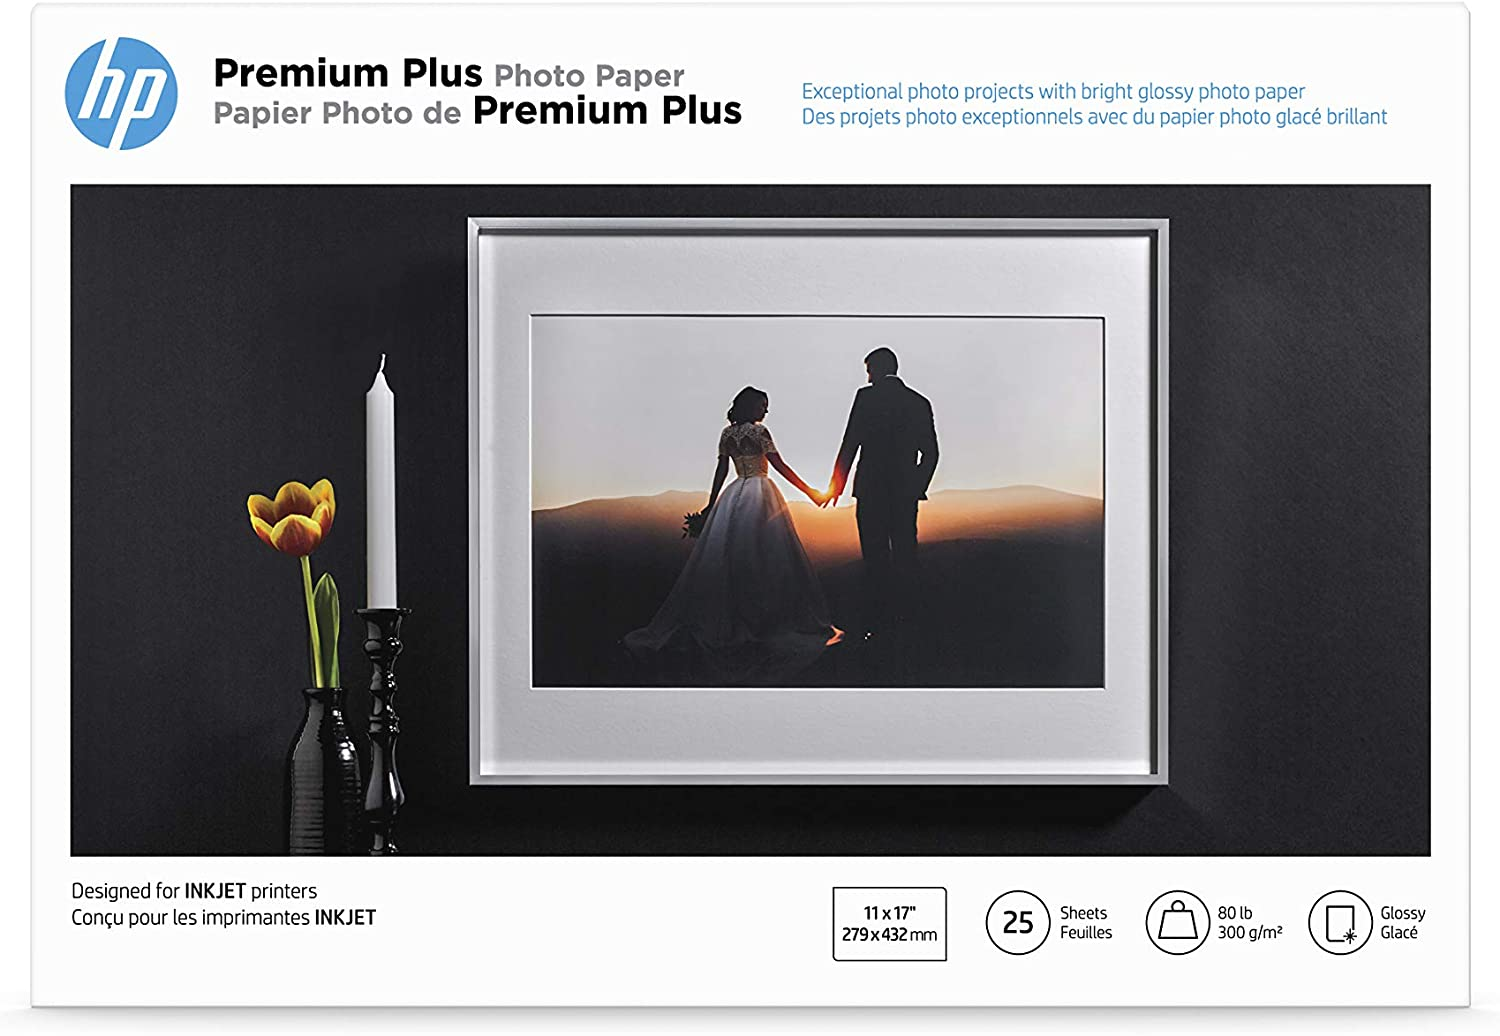 HP Premium Plus Photo Paper| Glossy | 11x17 | 25 Sheets